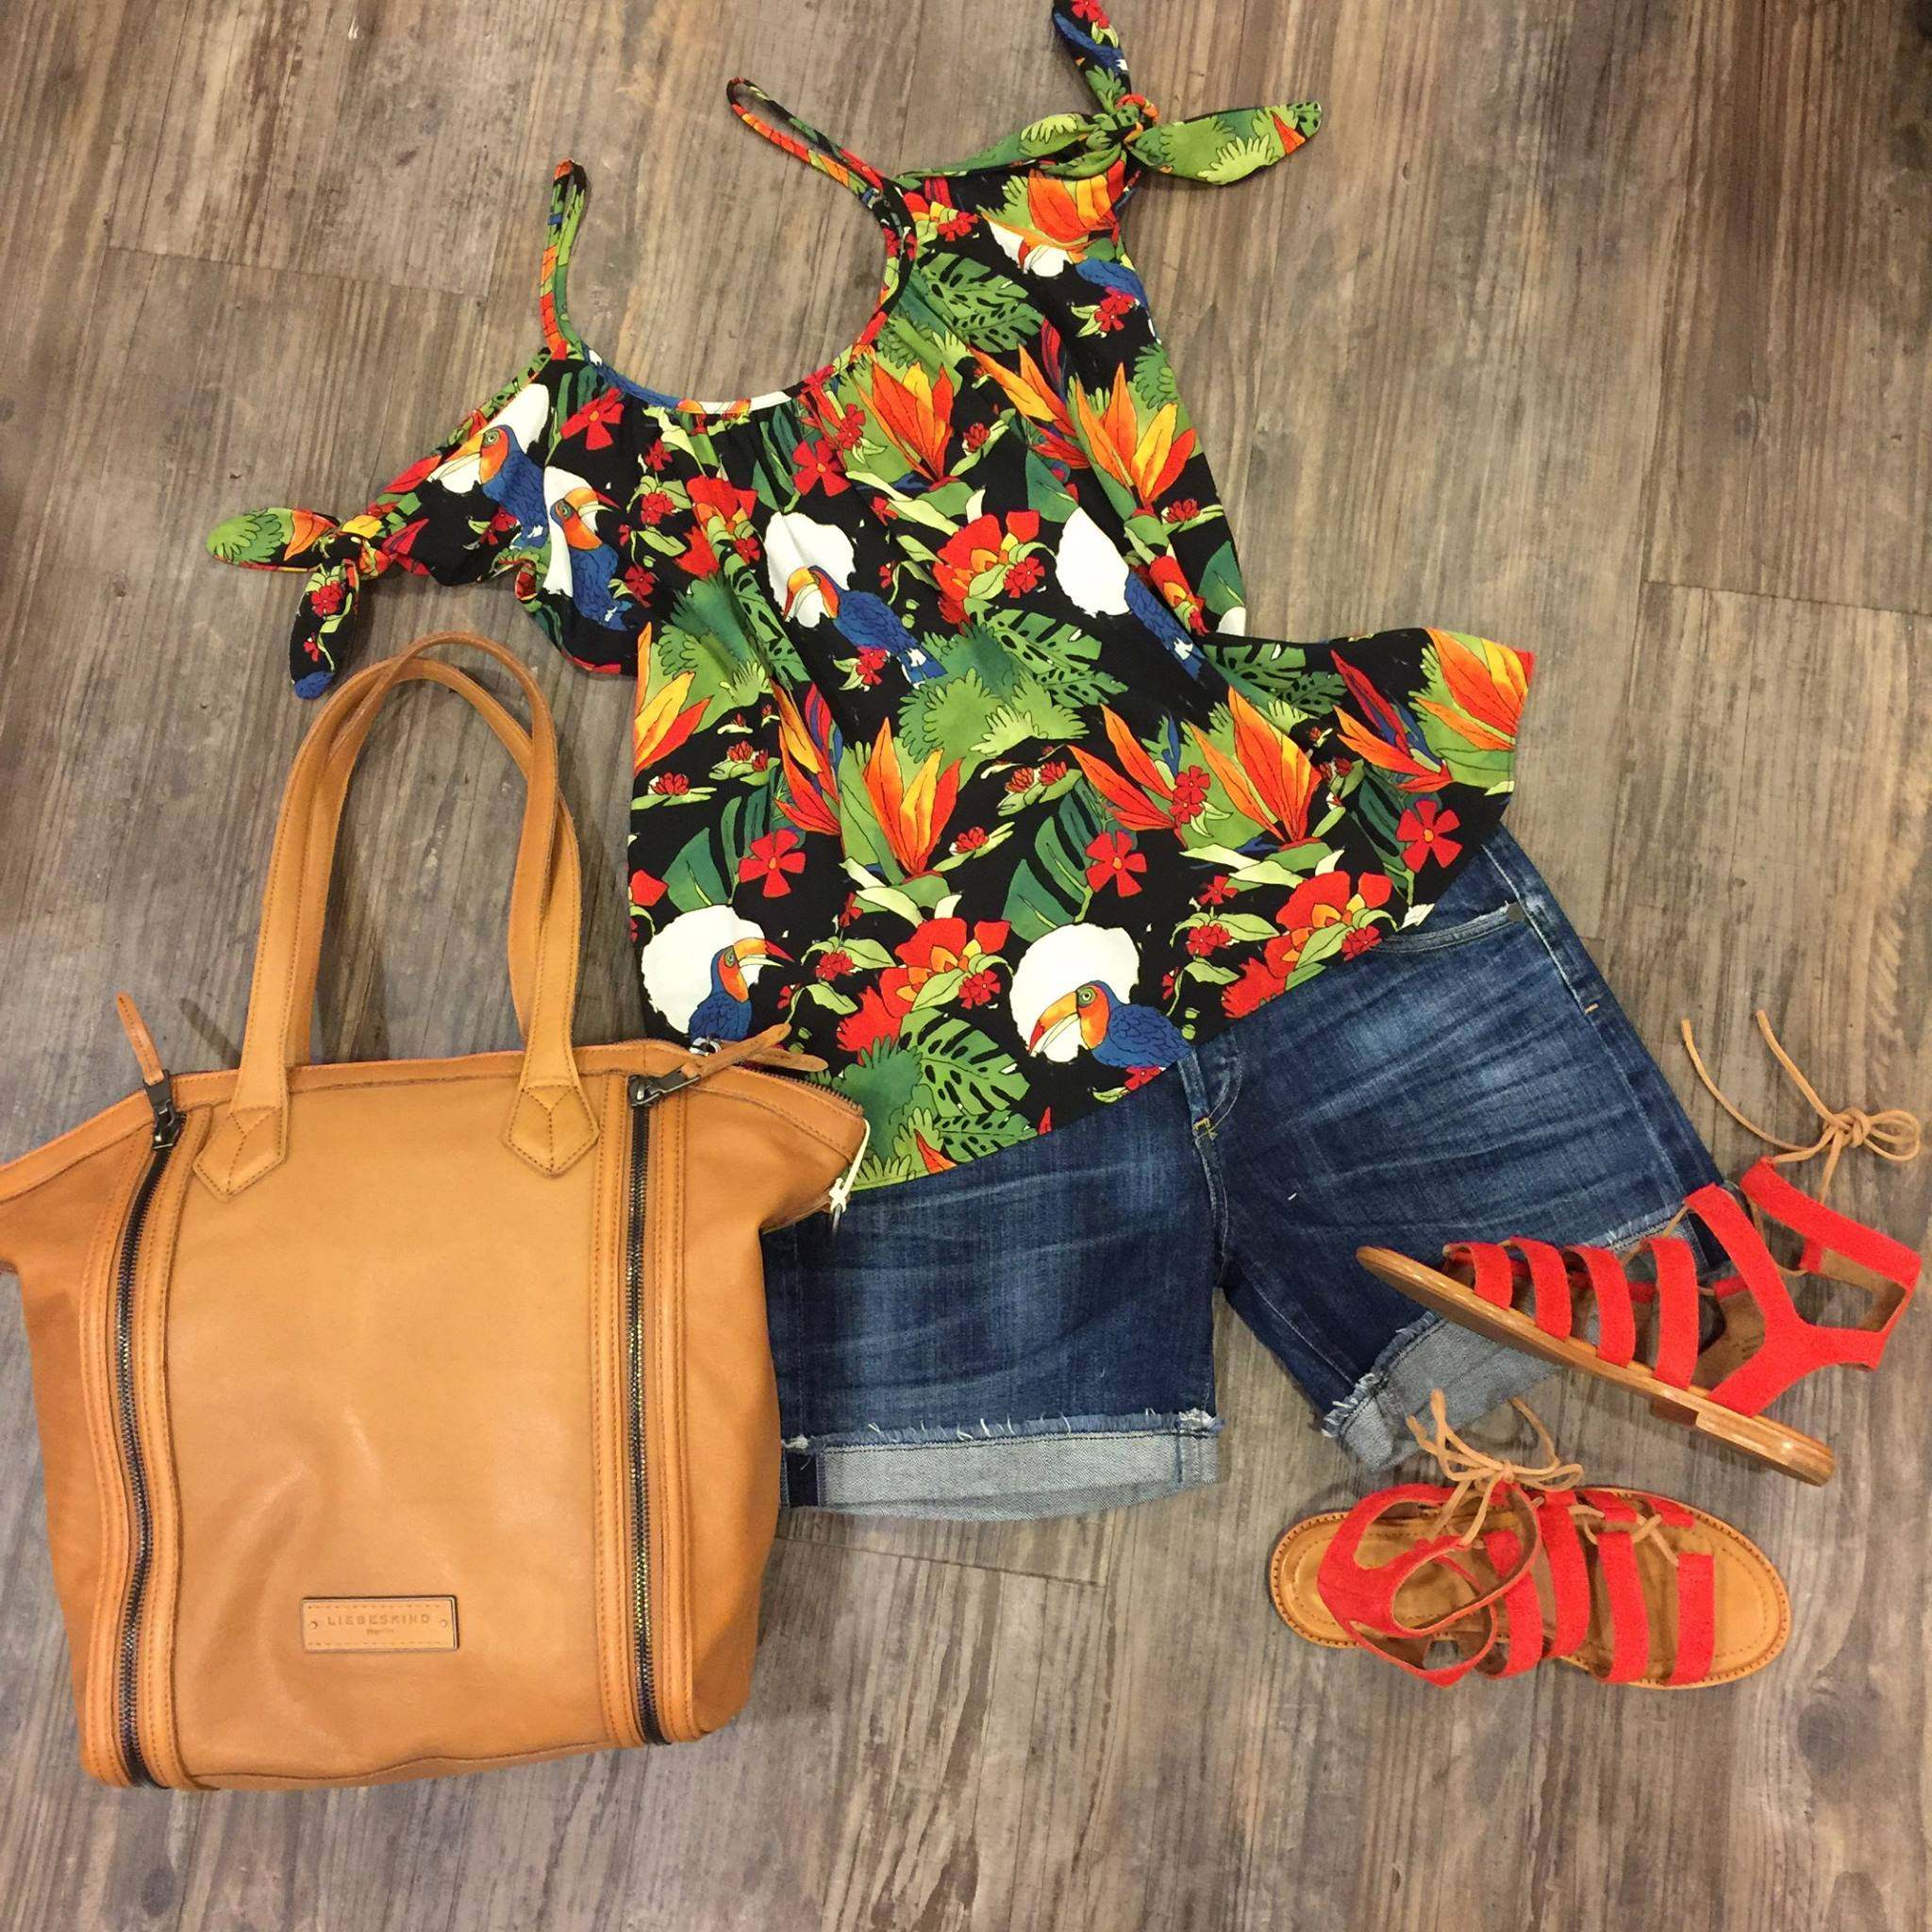 WALLA WALLA CLOTHING CO - Clothing | Shoes | Accessories Providing beautiful, better goods for women of all ages and body shapes along with impeccable service.103 E Main St,wallawallaclothing.com, (509)525-4783